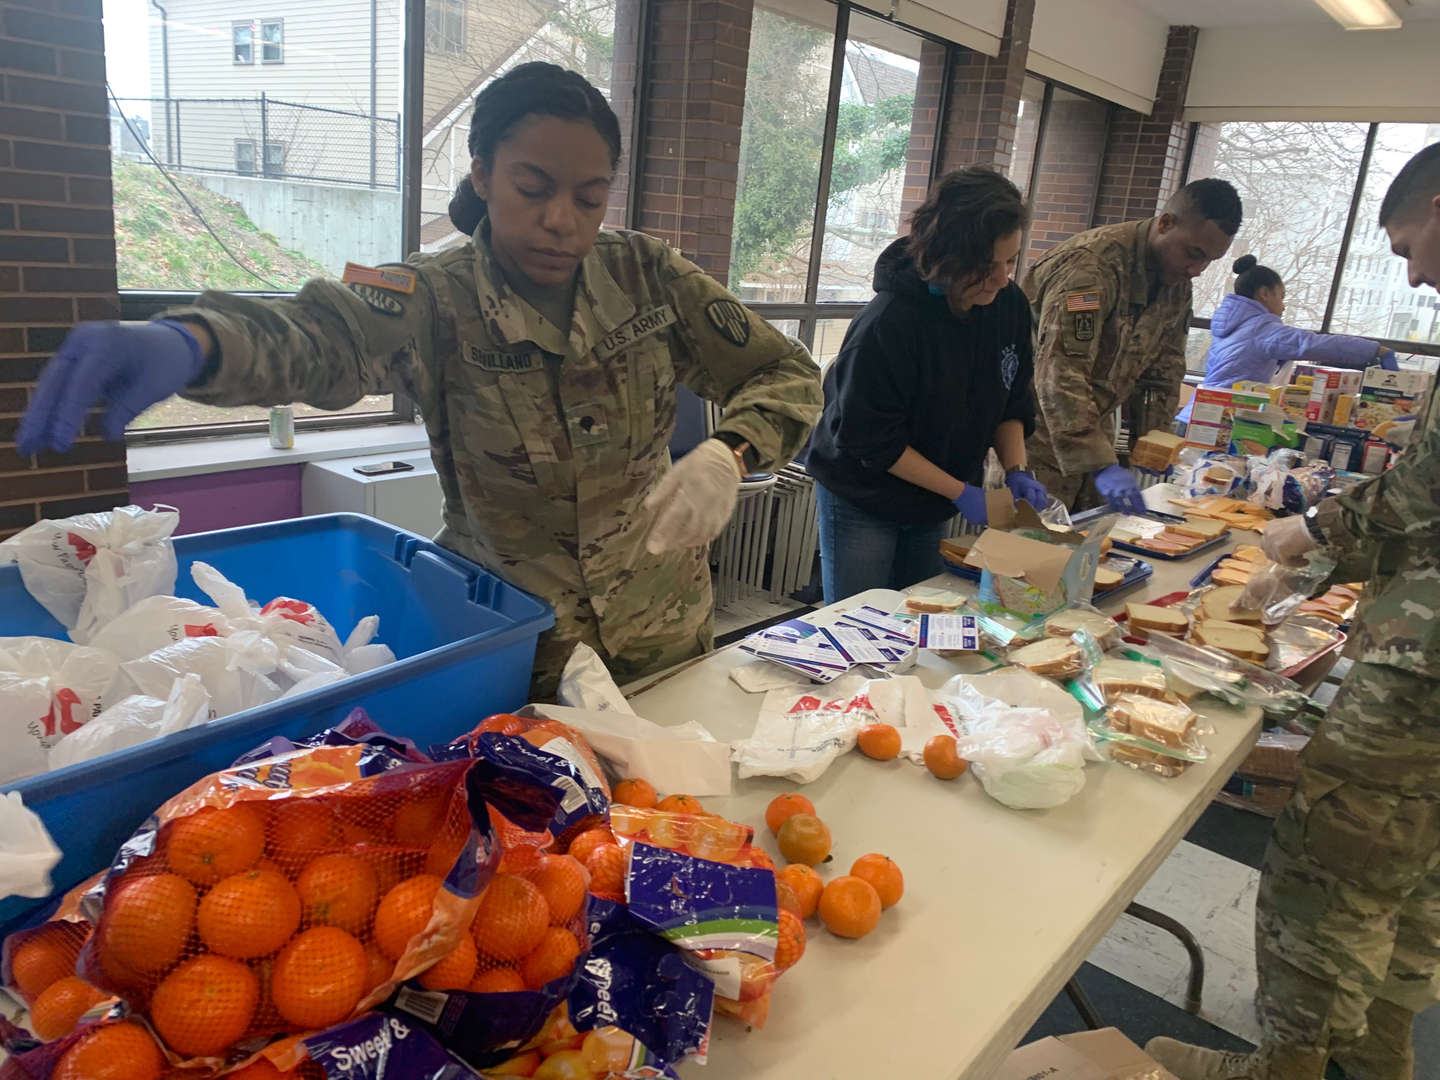 National Guard and local volunteers preparing meals at 95 Lincoln Ave.